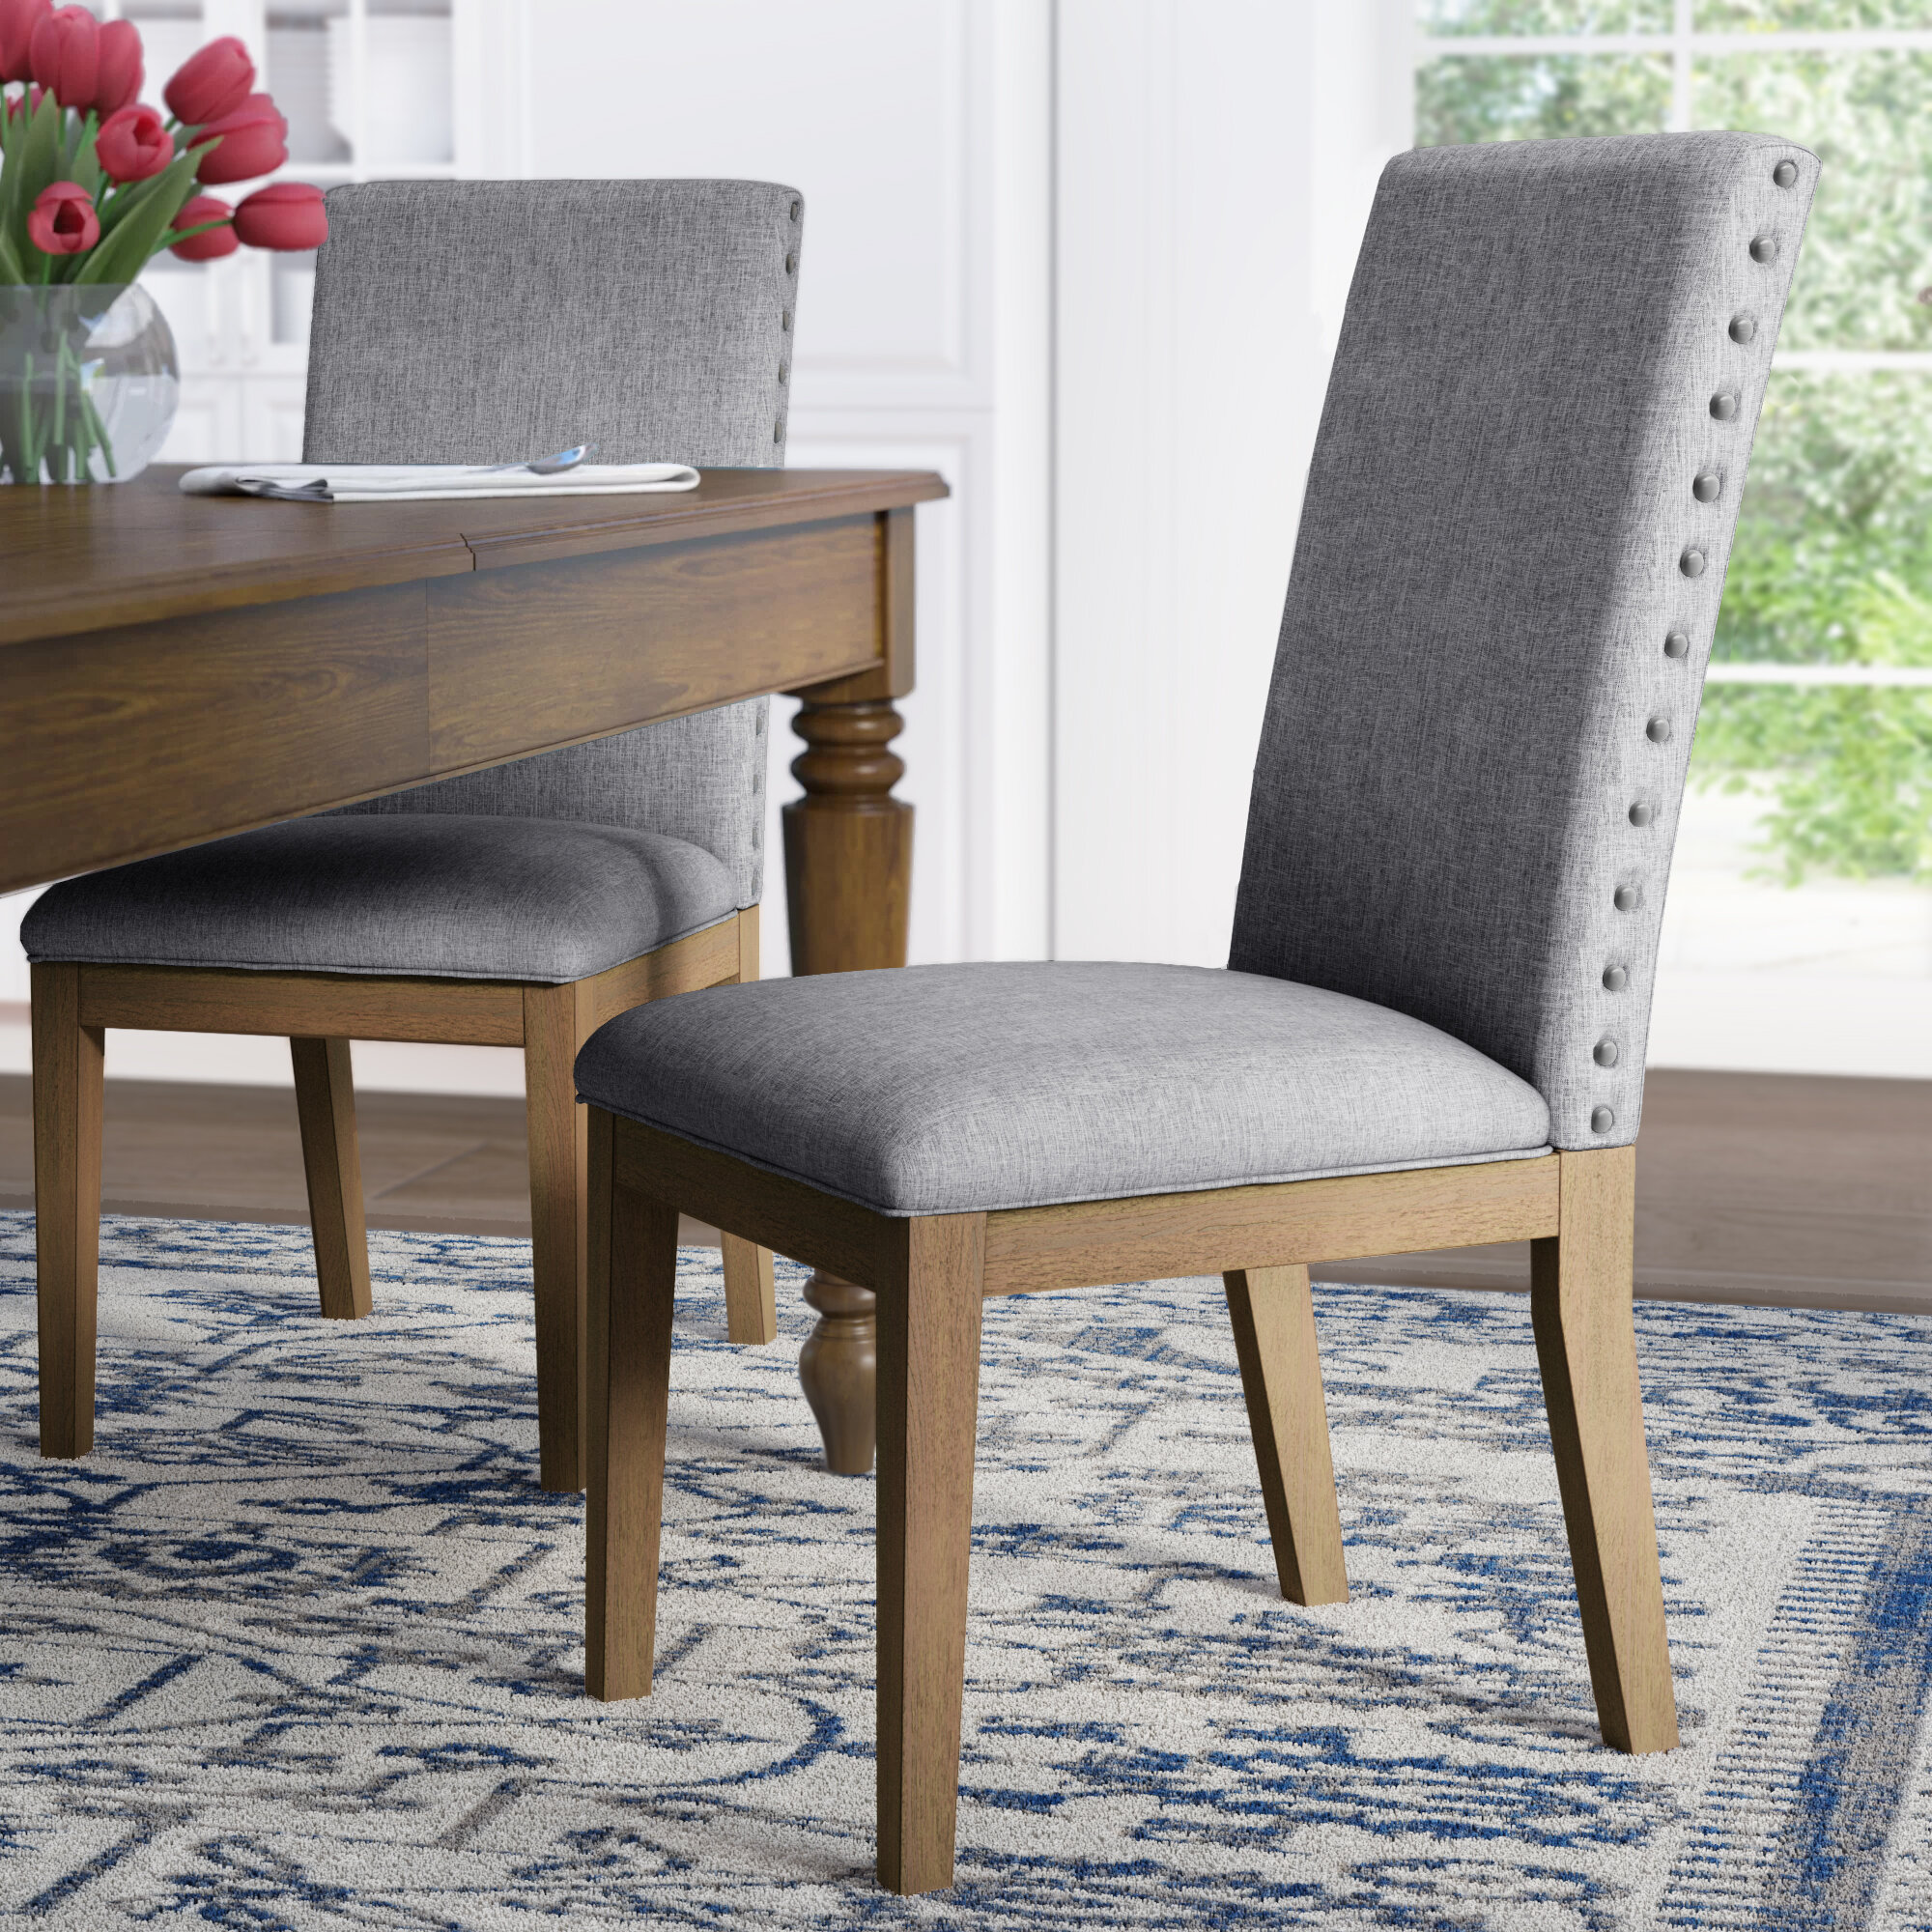 Irving Place Linen Nailhead Upholstered Dining Chair